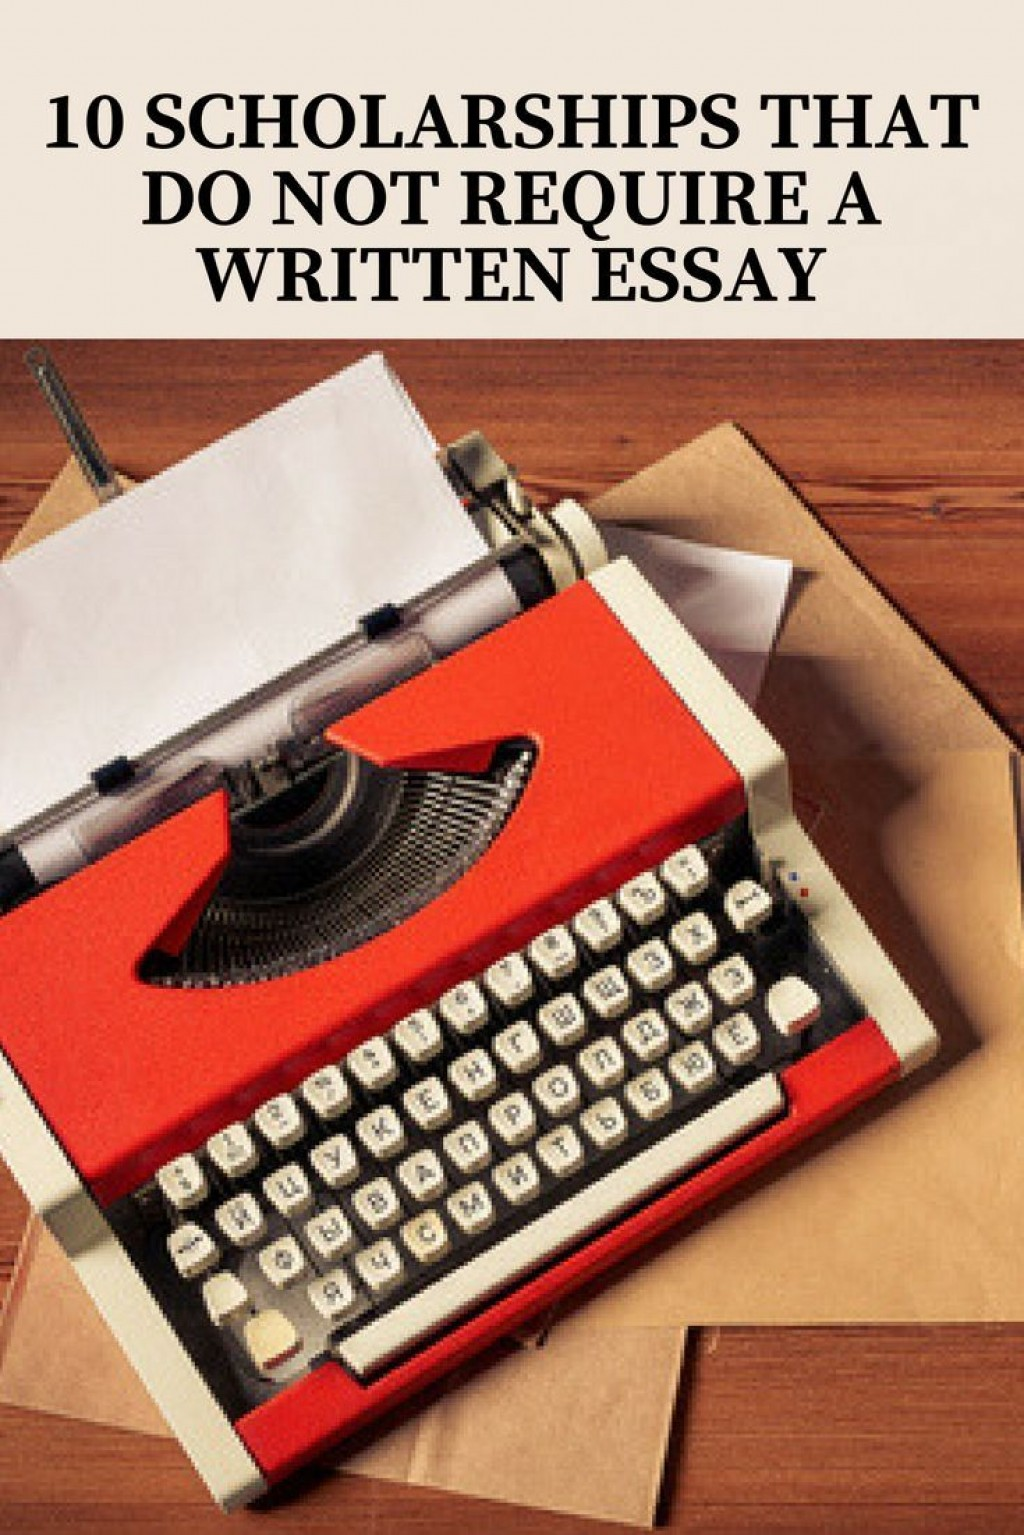 018 Scholarships That Don T Require Essays Essay Remarkable Are There Any Don't 2019 Canadian Large